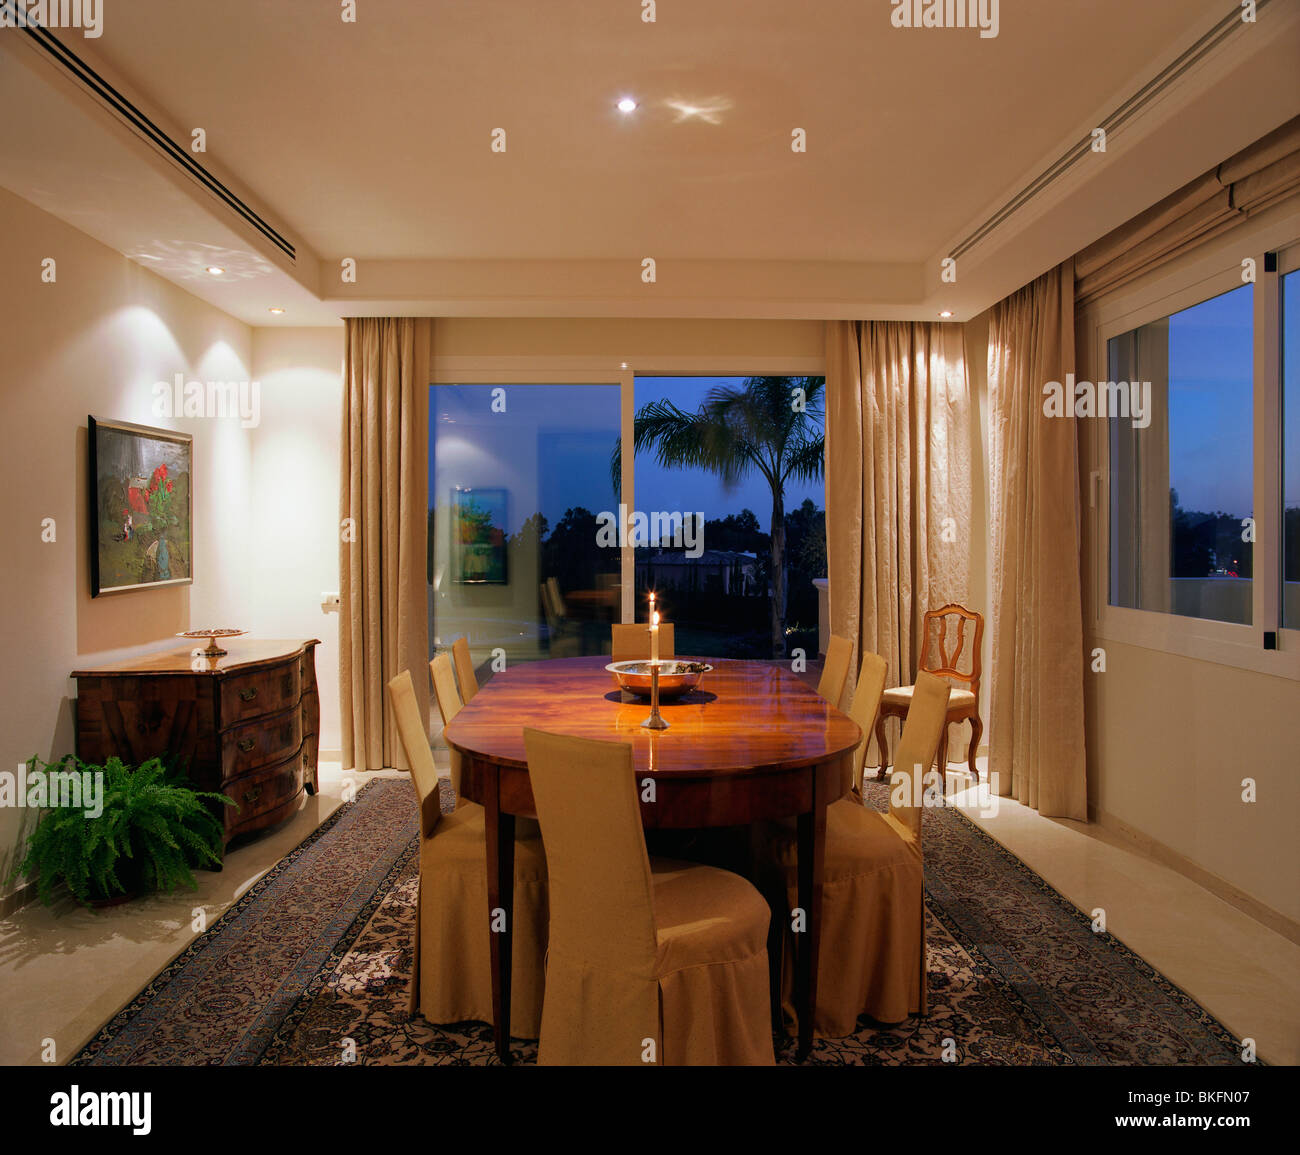 Down Lighting In Modern Spanish Dining Room At Night With Patio Doors And Polished Wood Table Chairs Loose Covers